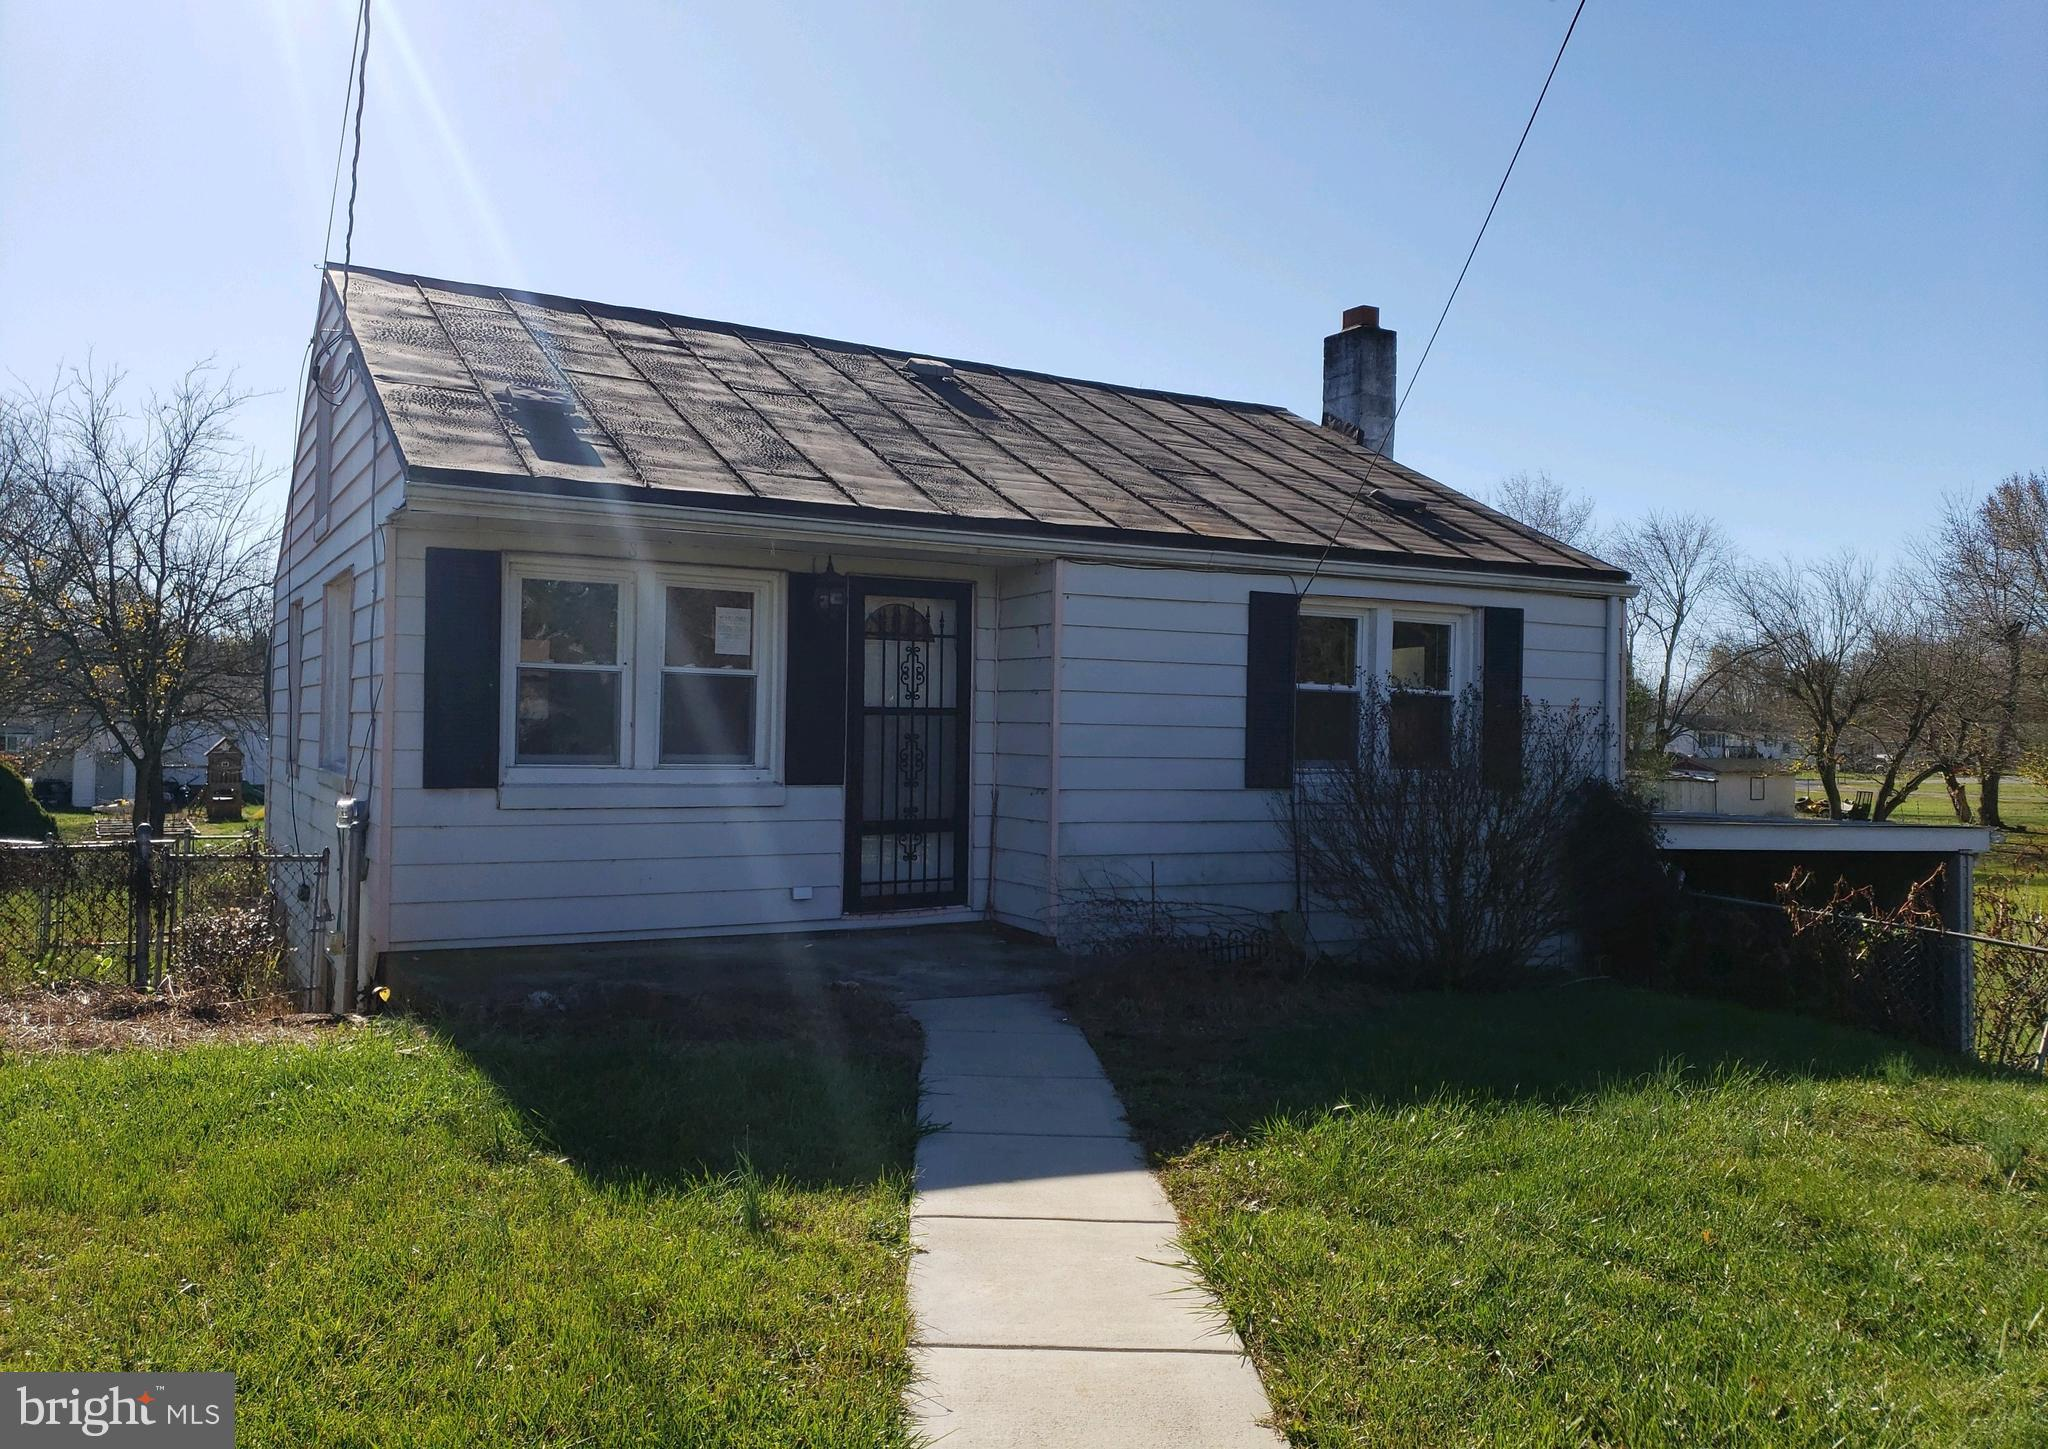 2 Bedroom, 1 Bathroom Rancher located in Ranson, kitchen with space for table, living room, basement with extra room, attic for additional storage, larger covered front porch, fenced in yard and a storage shed